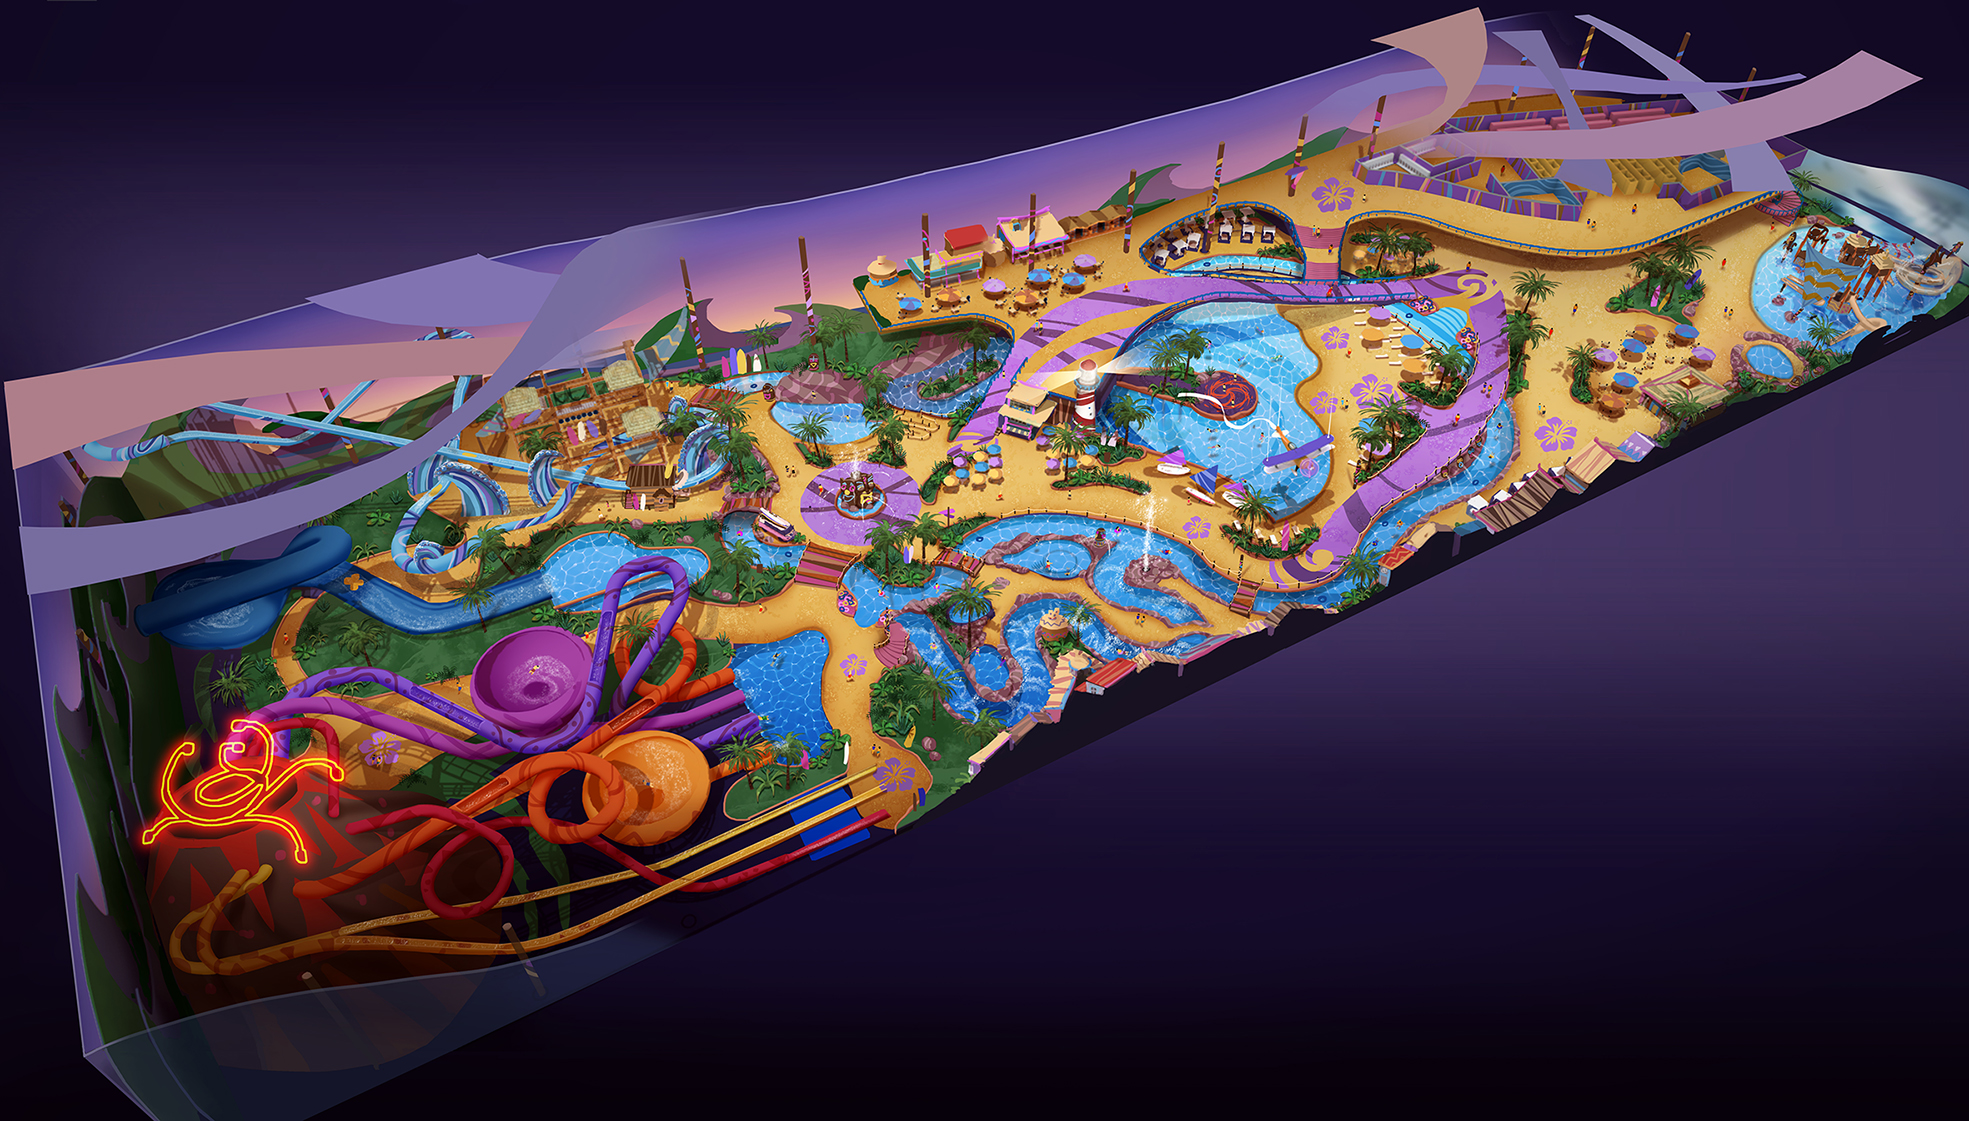 WANDA HEFEI WATER PARK <strong>| Master planning of 3-hectare (7.4 acre) water park</strong>